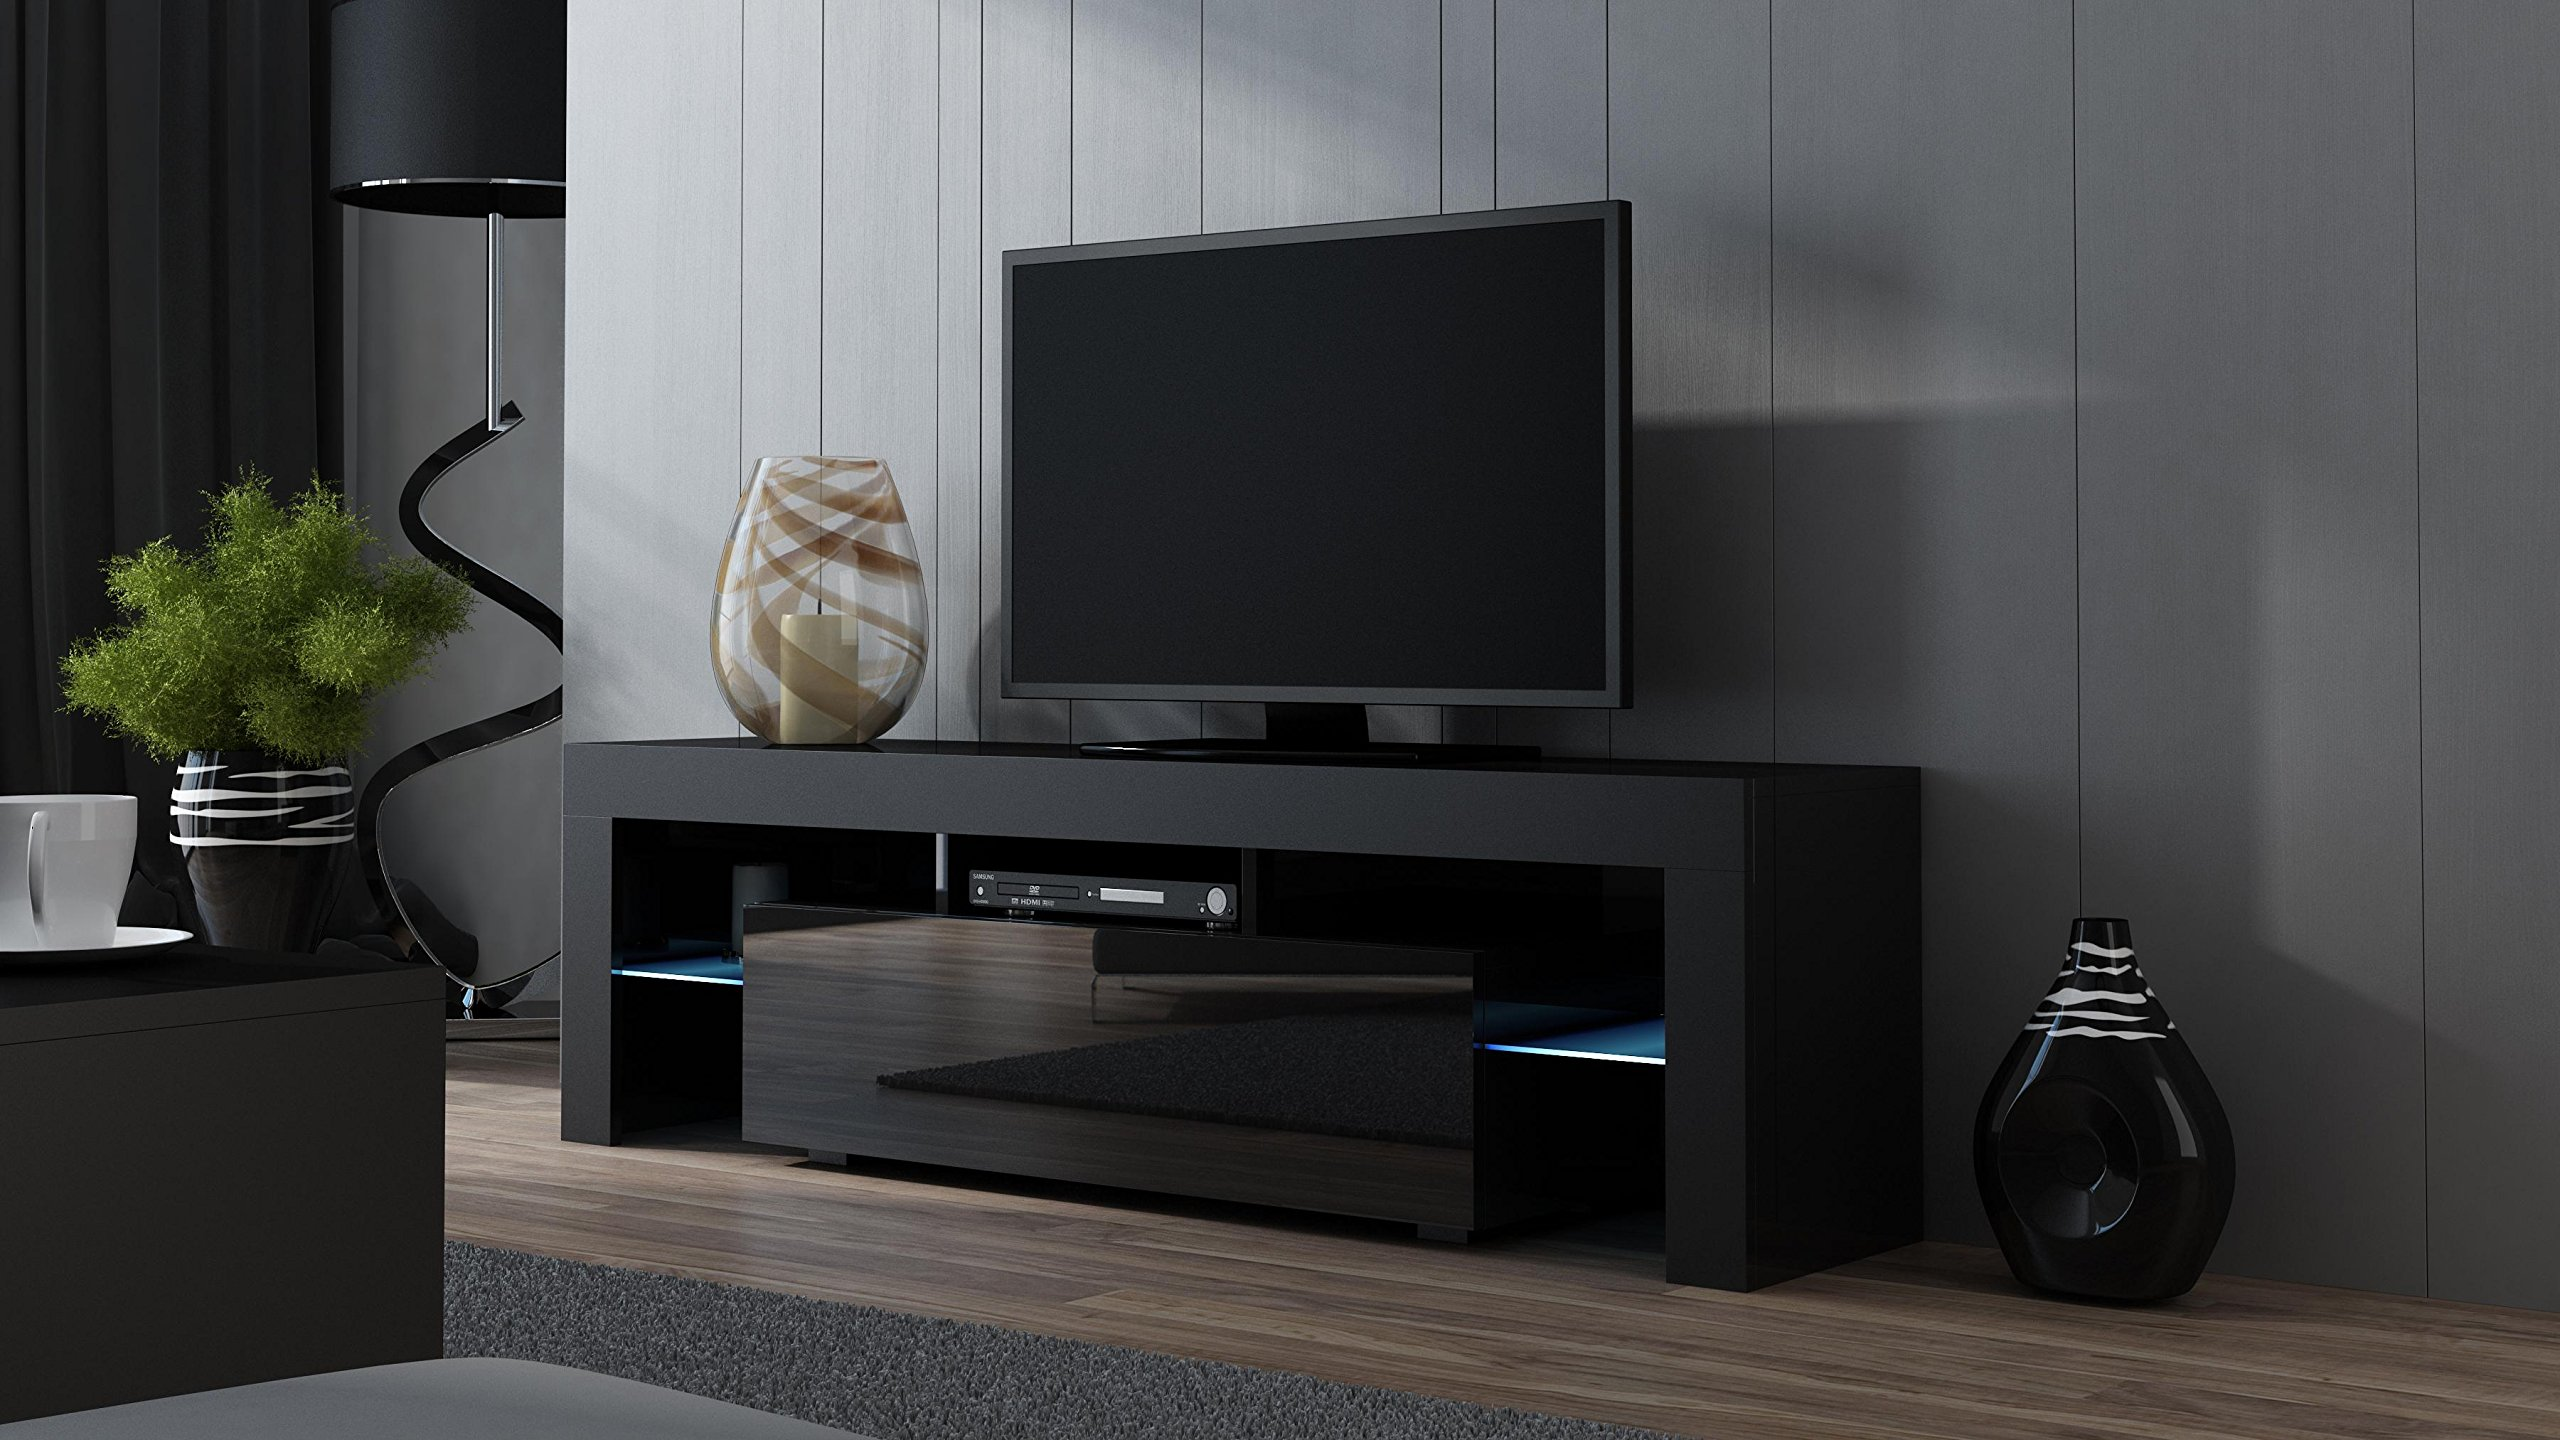 TV Stand MILANO 160 Black- TV Cabinet with LEDs - Living Room Furniture - TV Console for up to 70'' TV screens - TV stand with LED lights (Black & Black)